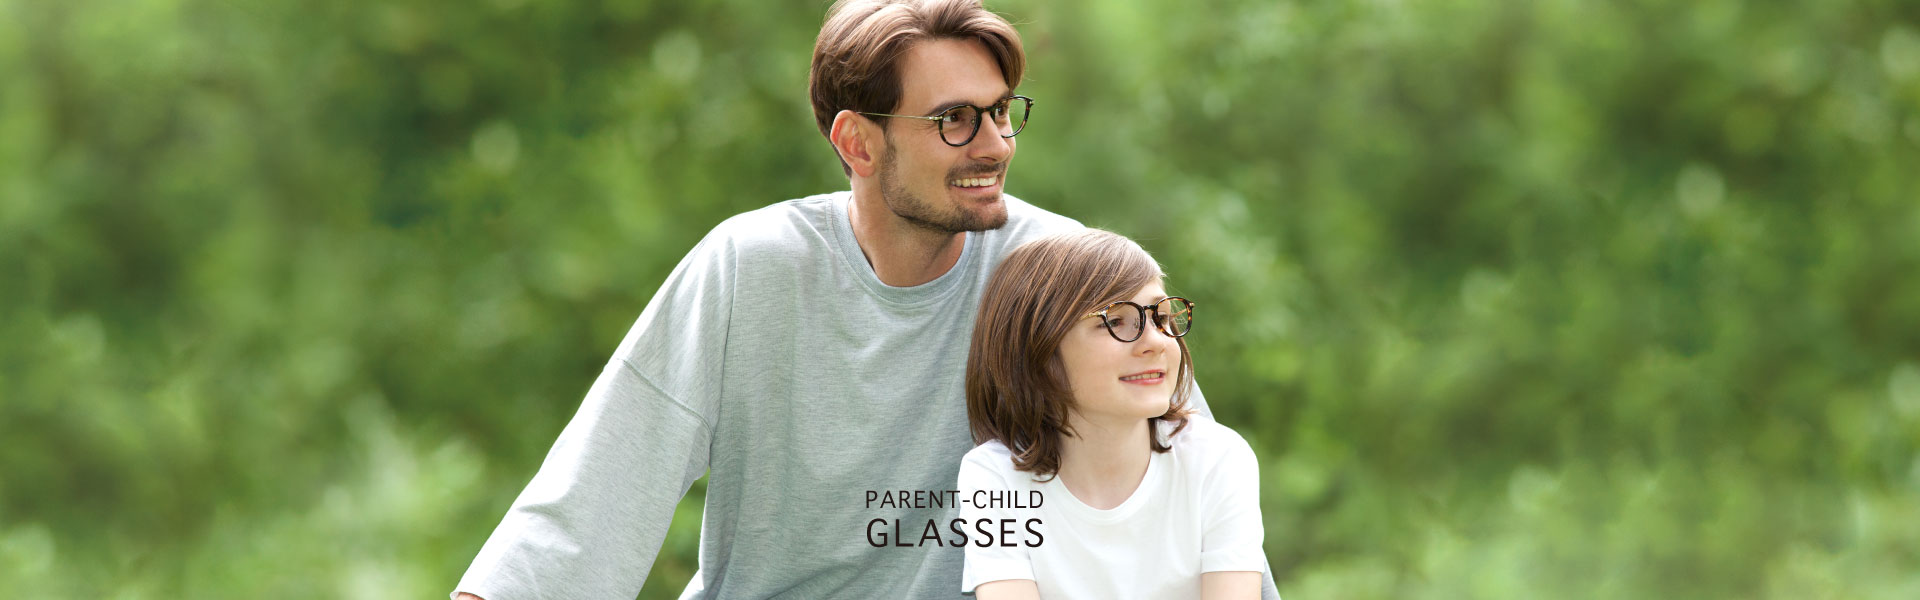 PARENT-CHILD GLASSES